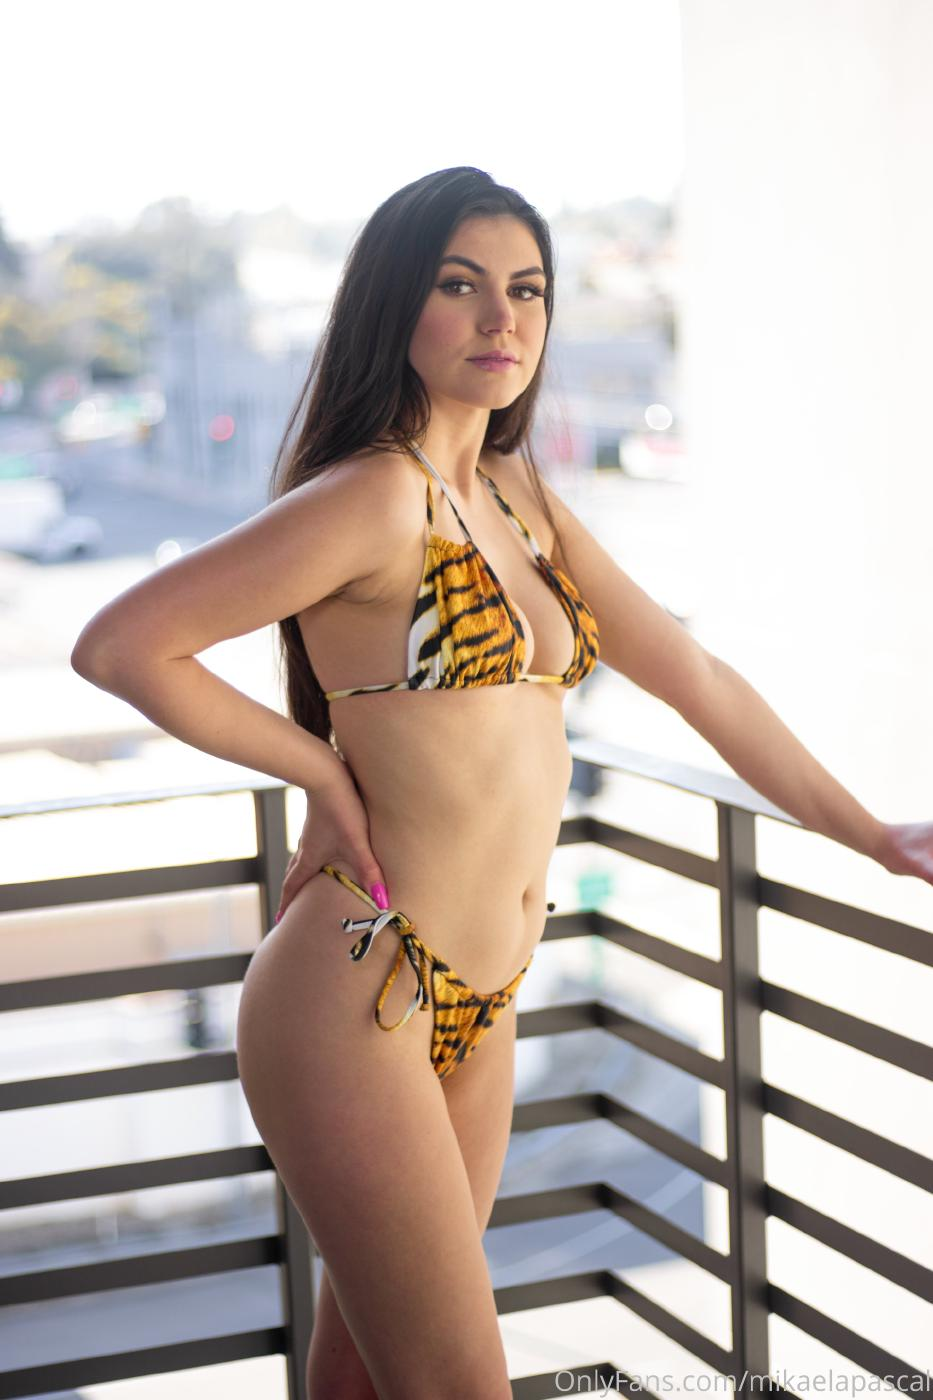 Mikaela Pascal Nude Tiger Bikini Photos Leaked 0001